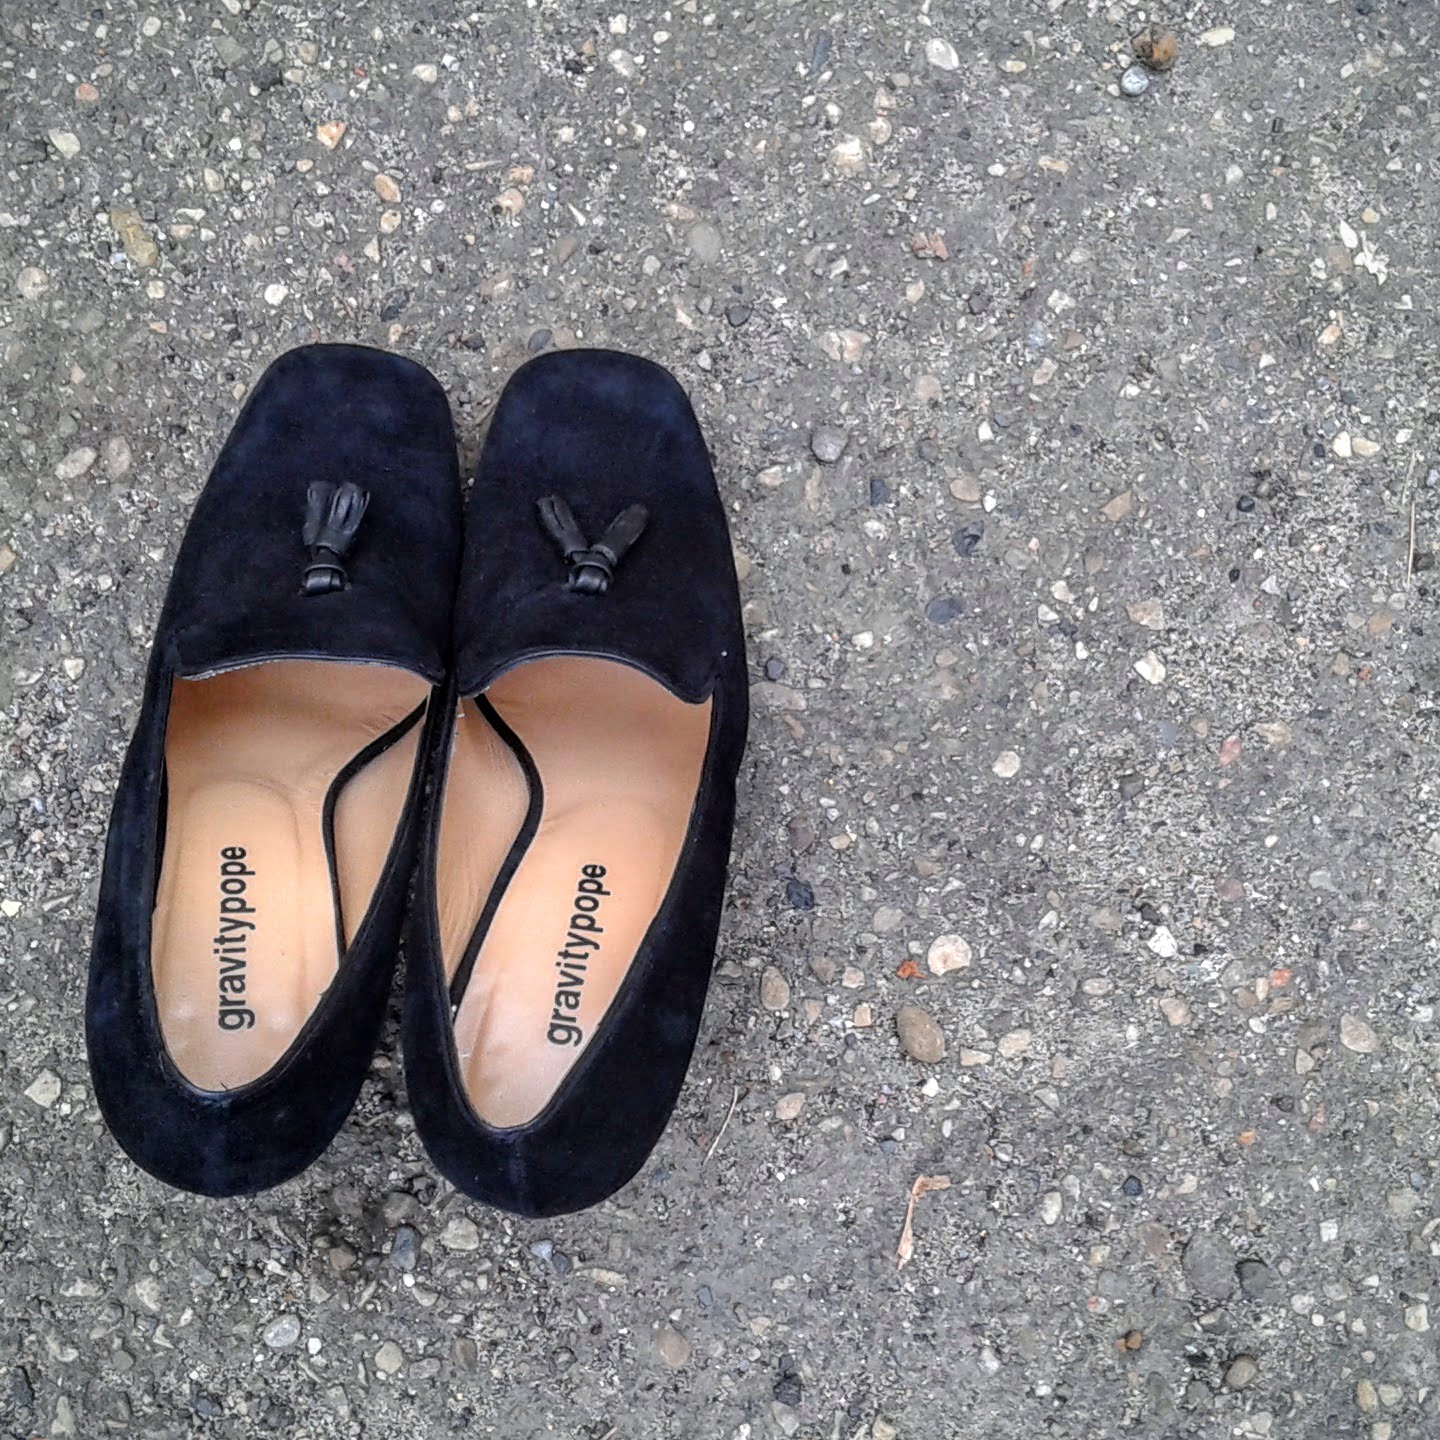 Gravity Pope shoes; S7, $46